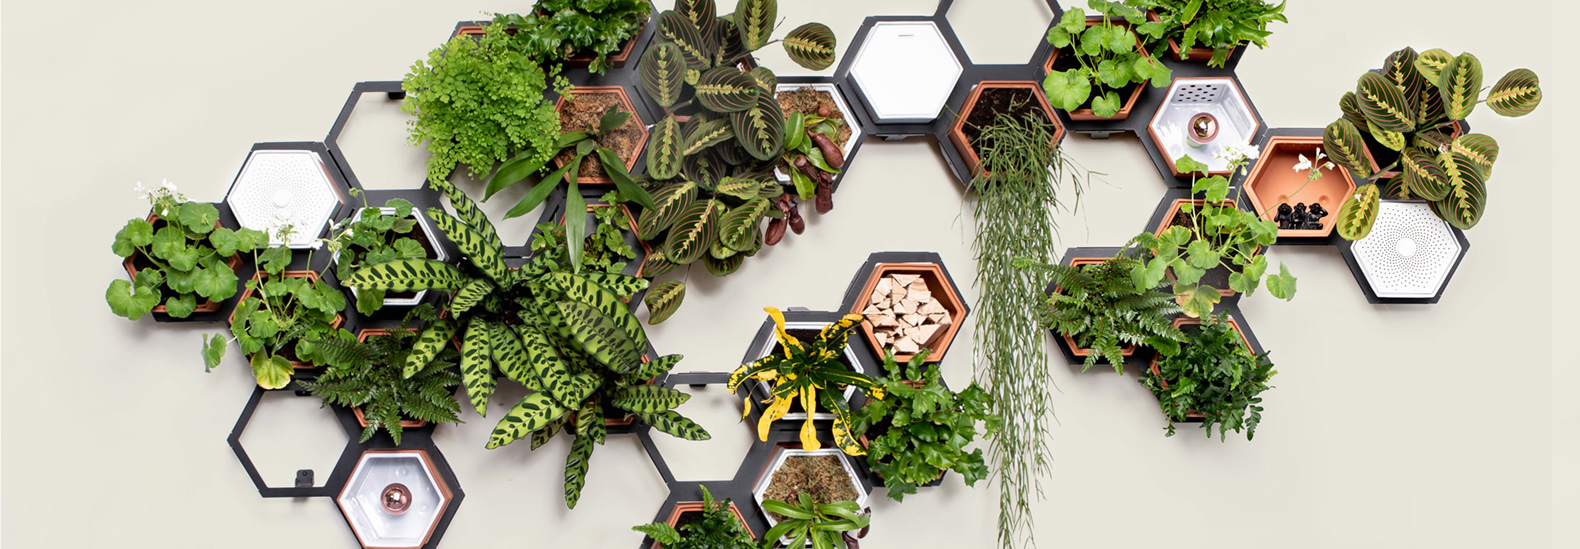 Plant a unique indoor garden with this modular living wall kit from Horticus